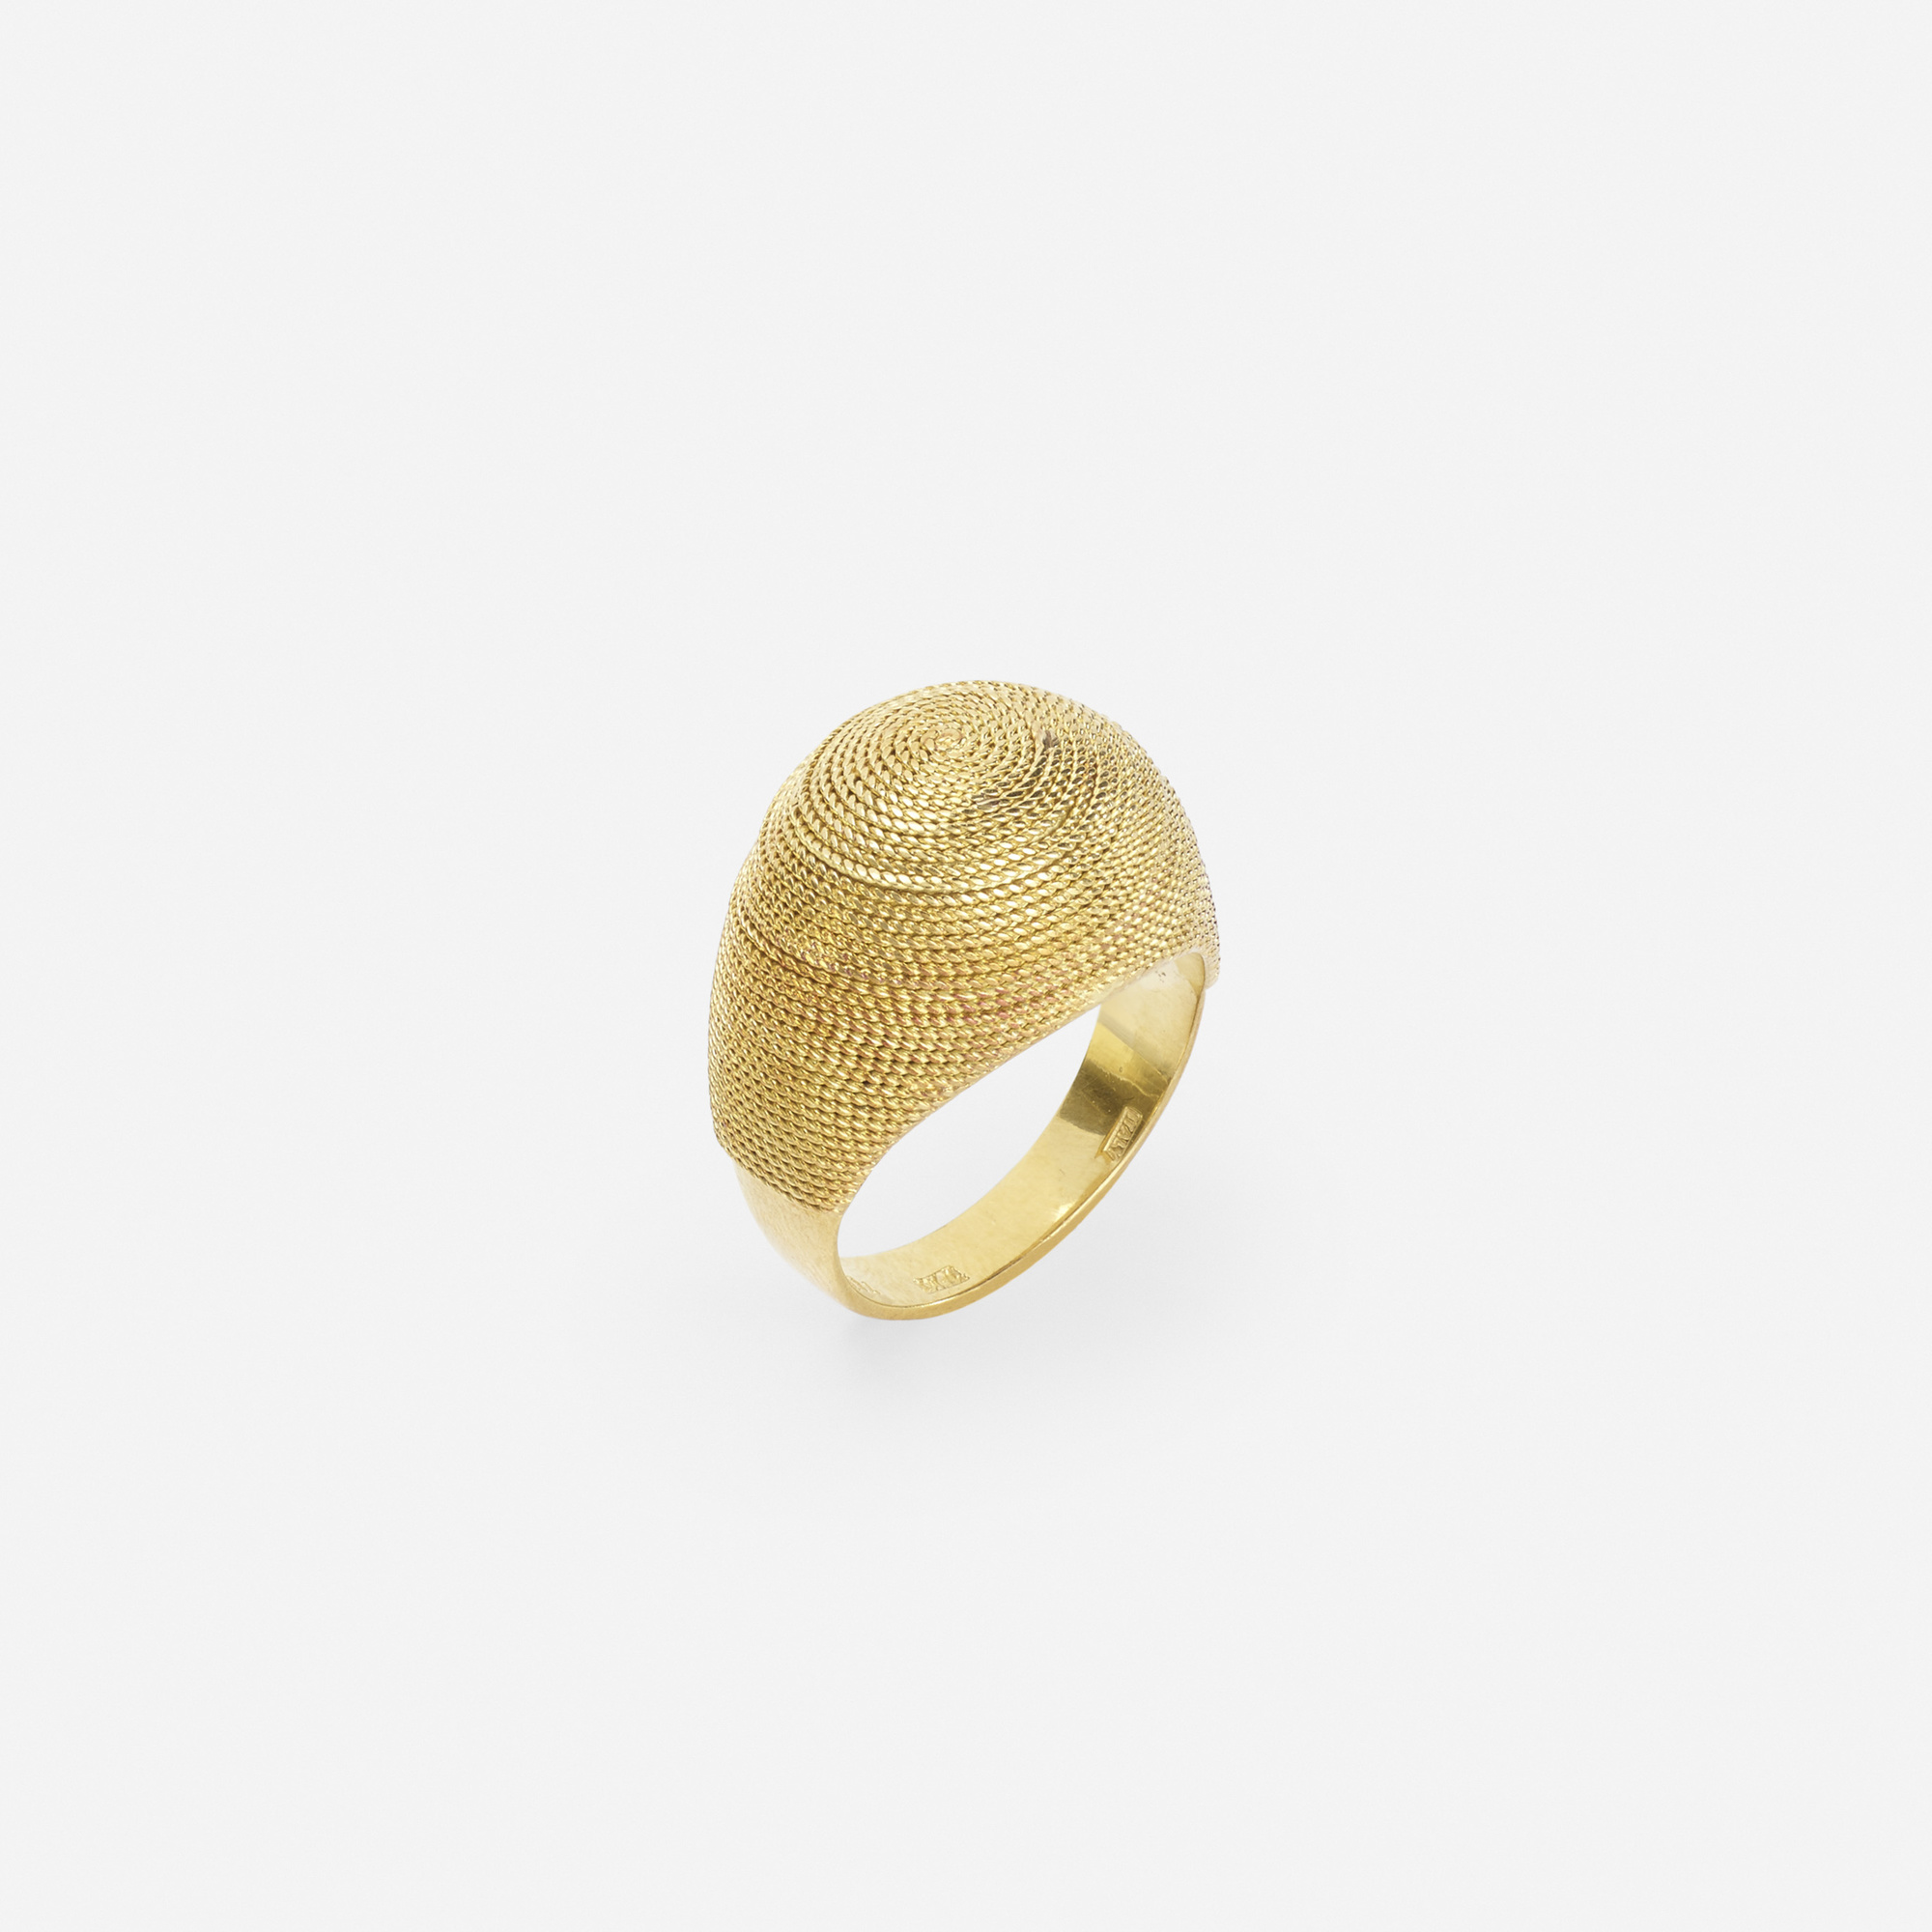 167: Paloma Picasso for Tiffany & Co. / A gold ring (1 of 1)